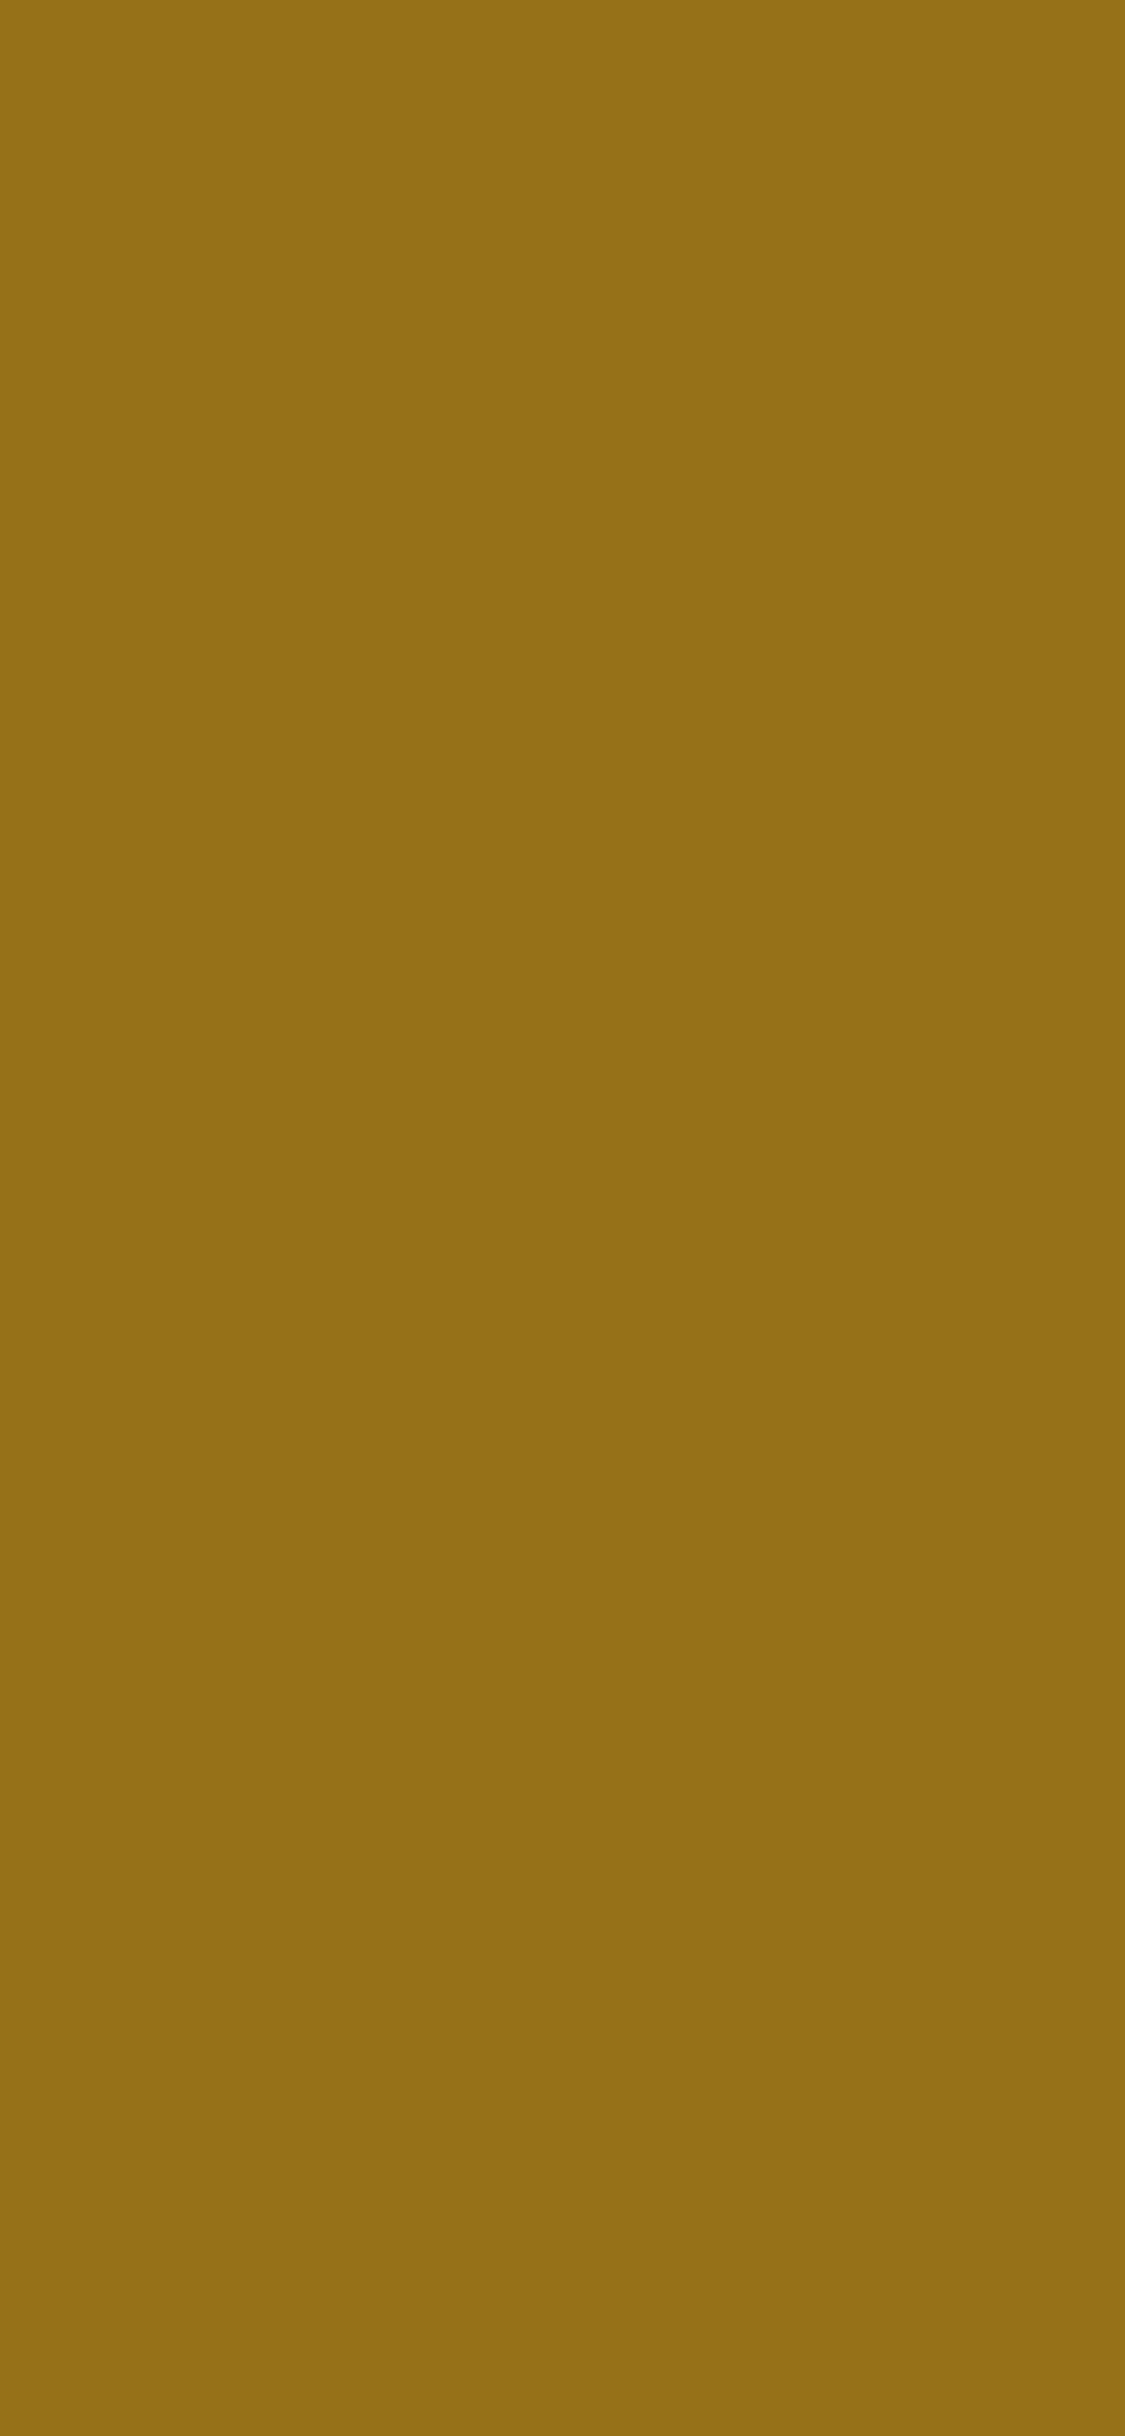 1125x2436 Sand Dune Solid Color Background